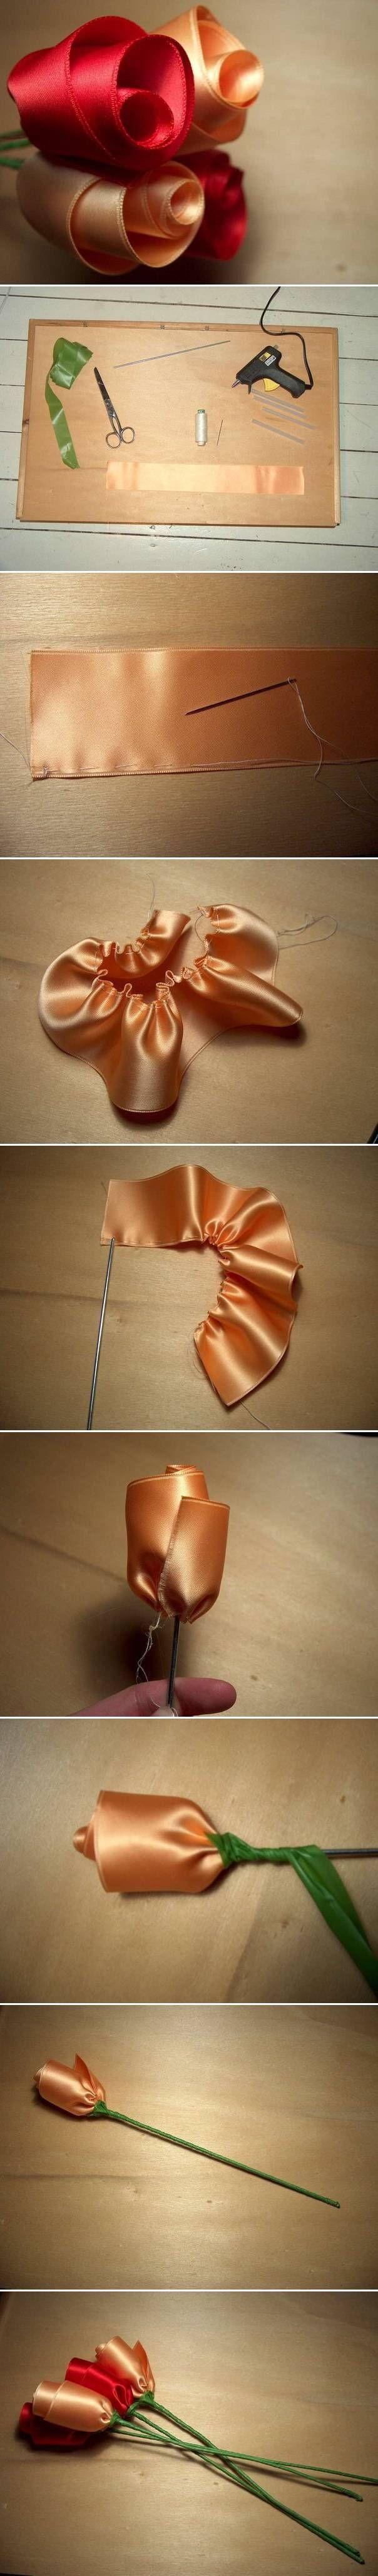 Tutorial To Make Rose Decorations Pictures, Photos, and ...